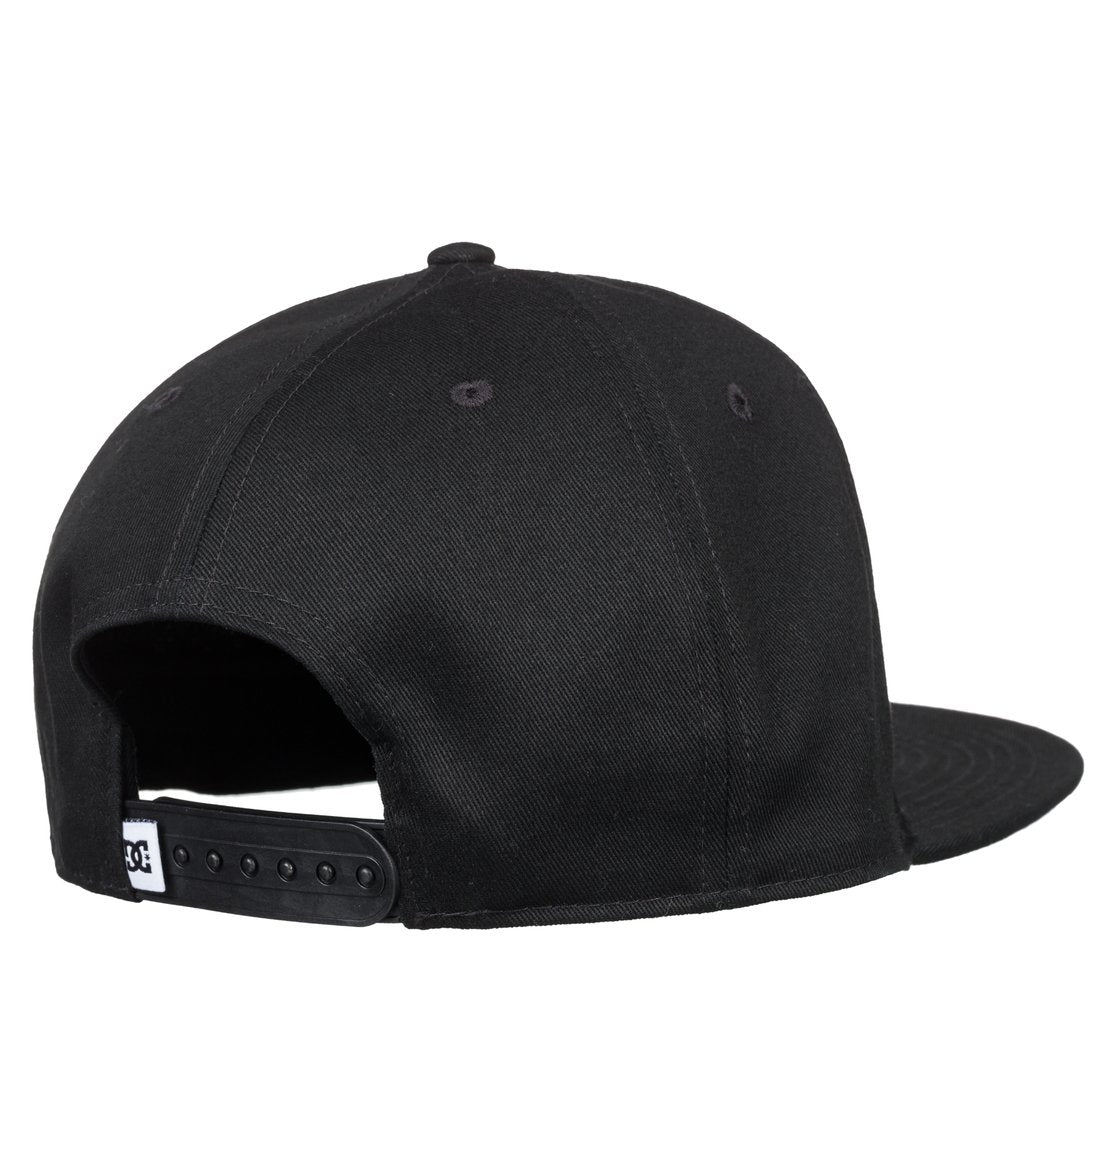 DC Reynotts Snapback Hats